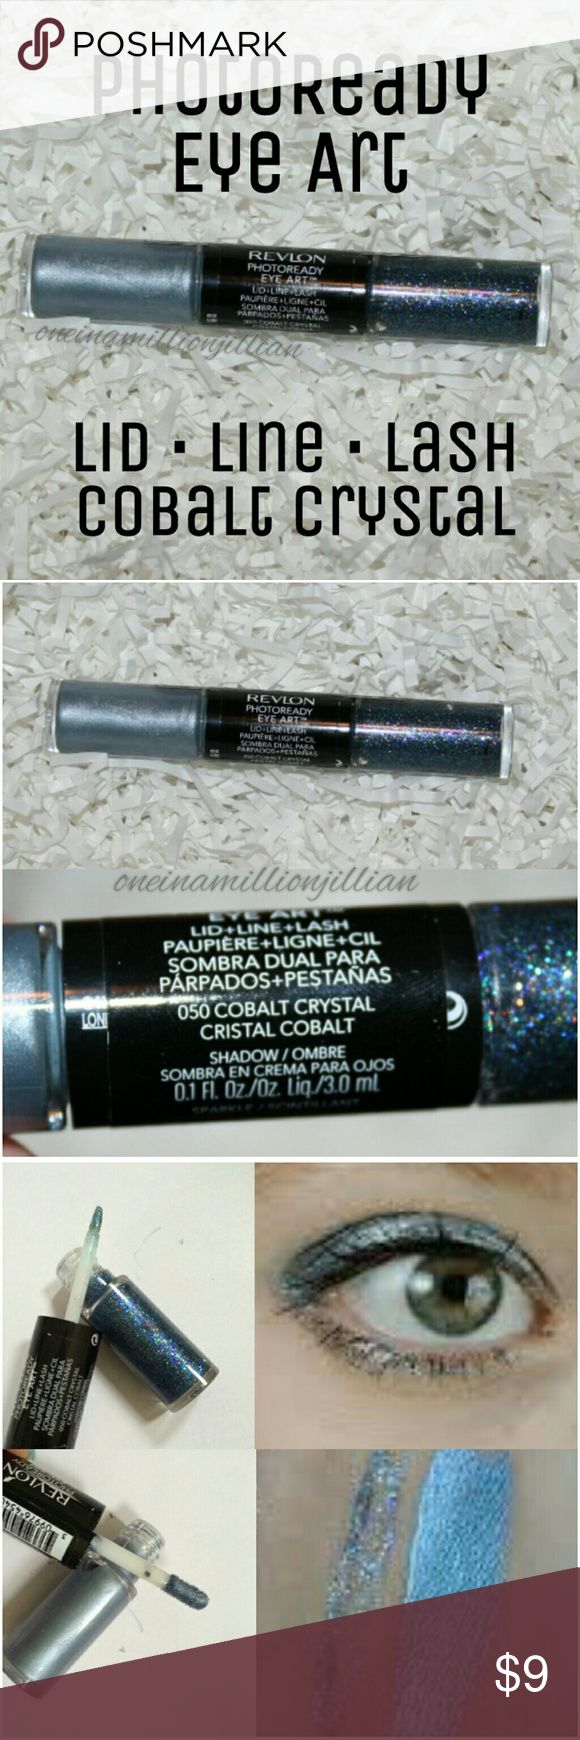 Revlon PhotoReady Eye Art - Cobalt Crystal New/Sealed (Swatches from Google)  Full Sz & Authentic  Color: Cobalt Crystal  Dual-ended with an intensely pigmented cream shadow on one end & a brilliant sparkle on the other. Cream shadow glides on effortlessy for smooth, rich color. Use the slim brush applicator to apply sparkle to the lid, as a liner or on the tips of lashes.  Check my page for more great items & discounts. #oneinamillionjillian #glitter Revlon Makeup Eyeliner